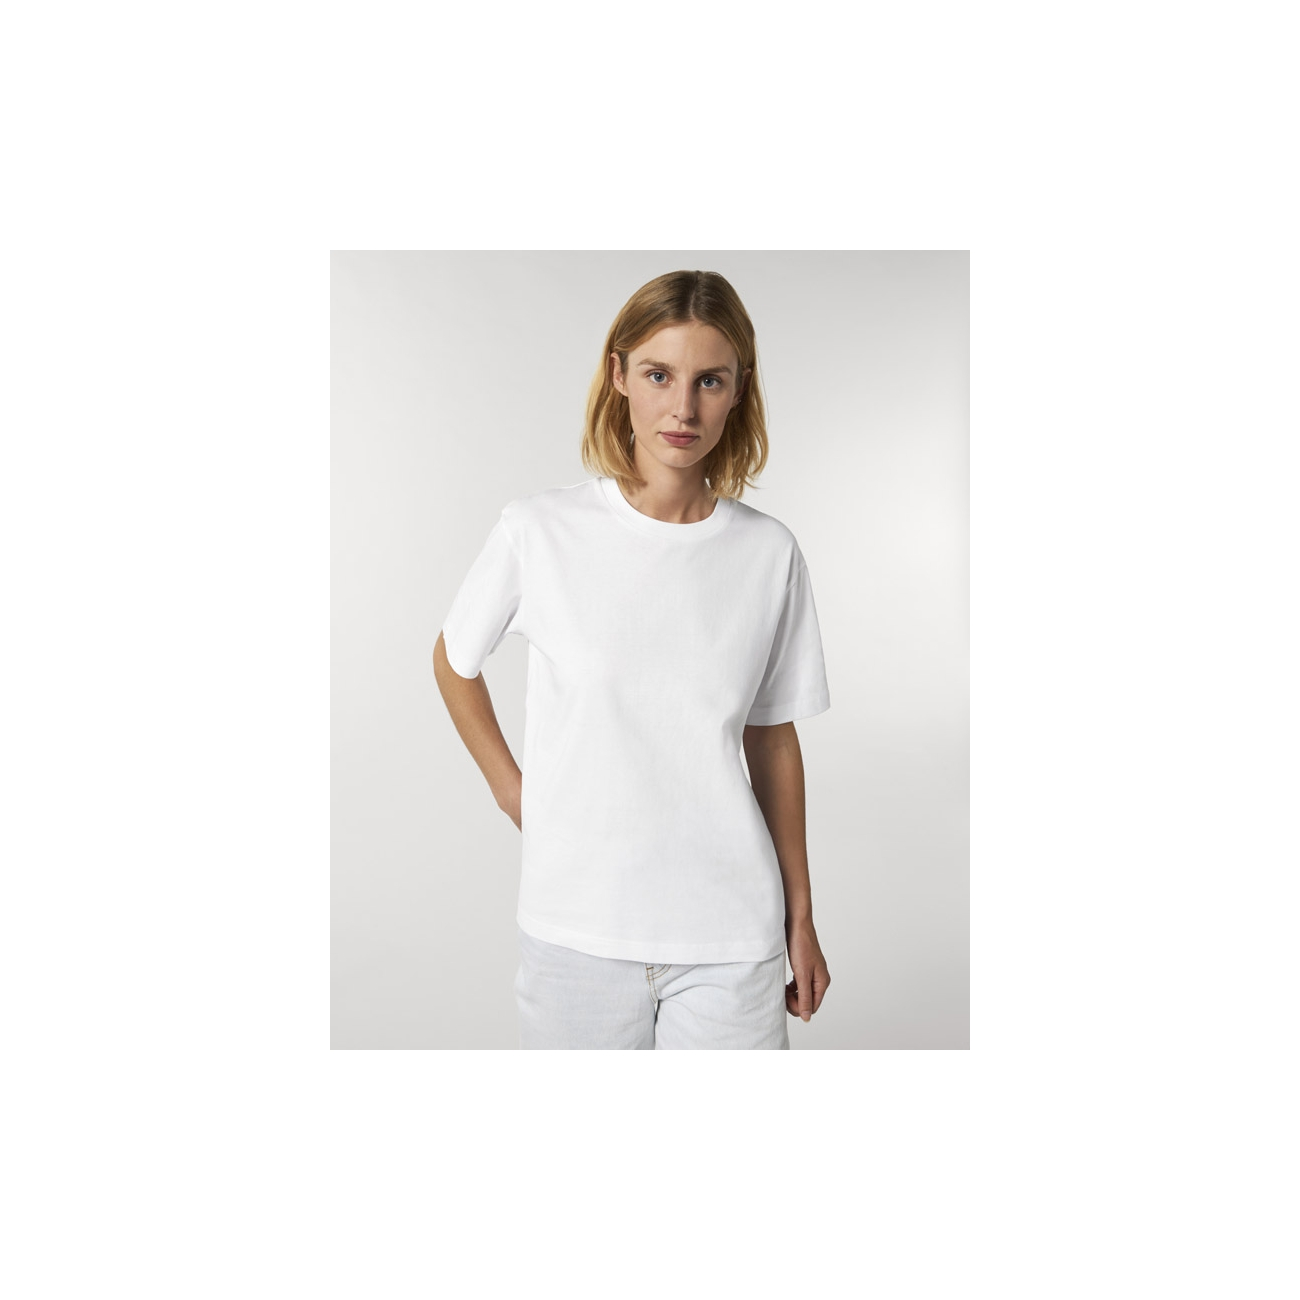 https://tee-shirt-bio.com/9663-thickbox_default/tee-shirt-coton-bio-coupe-ample-femme-blanc.jpg